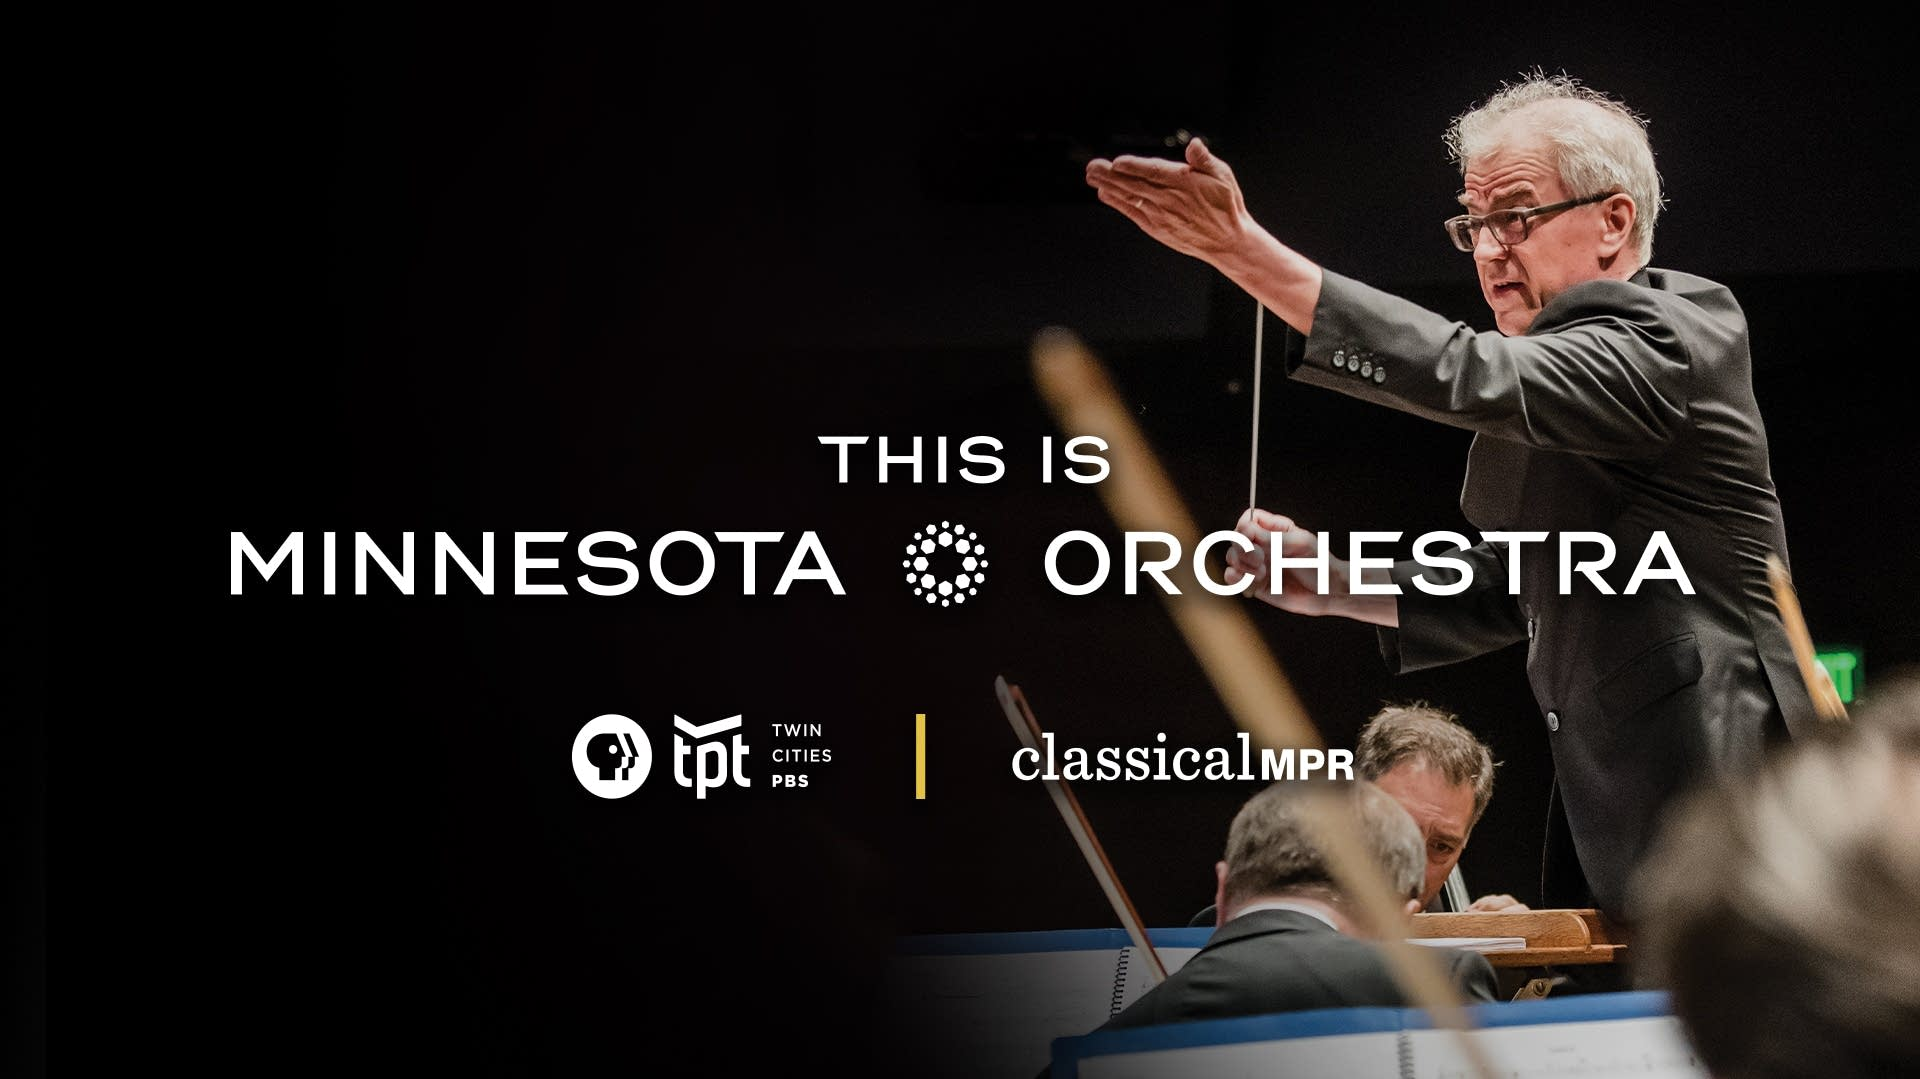 This is Minnesota Orchestra